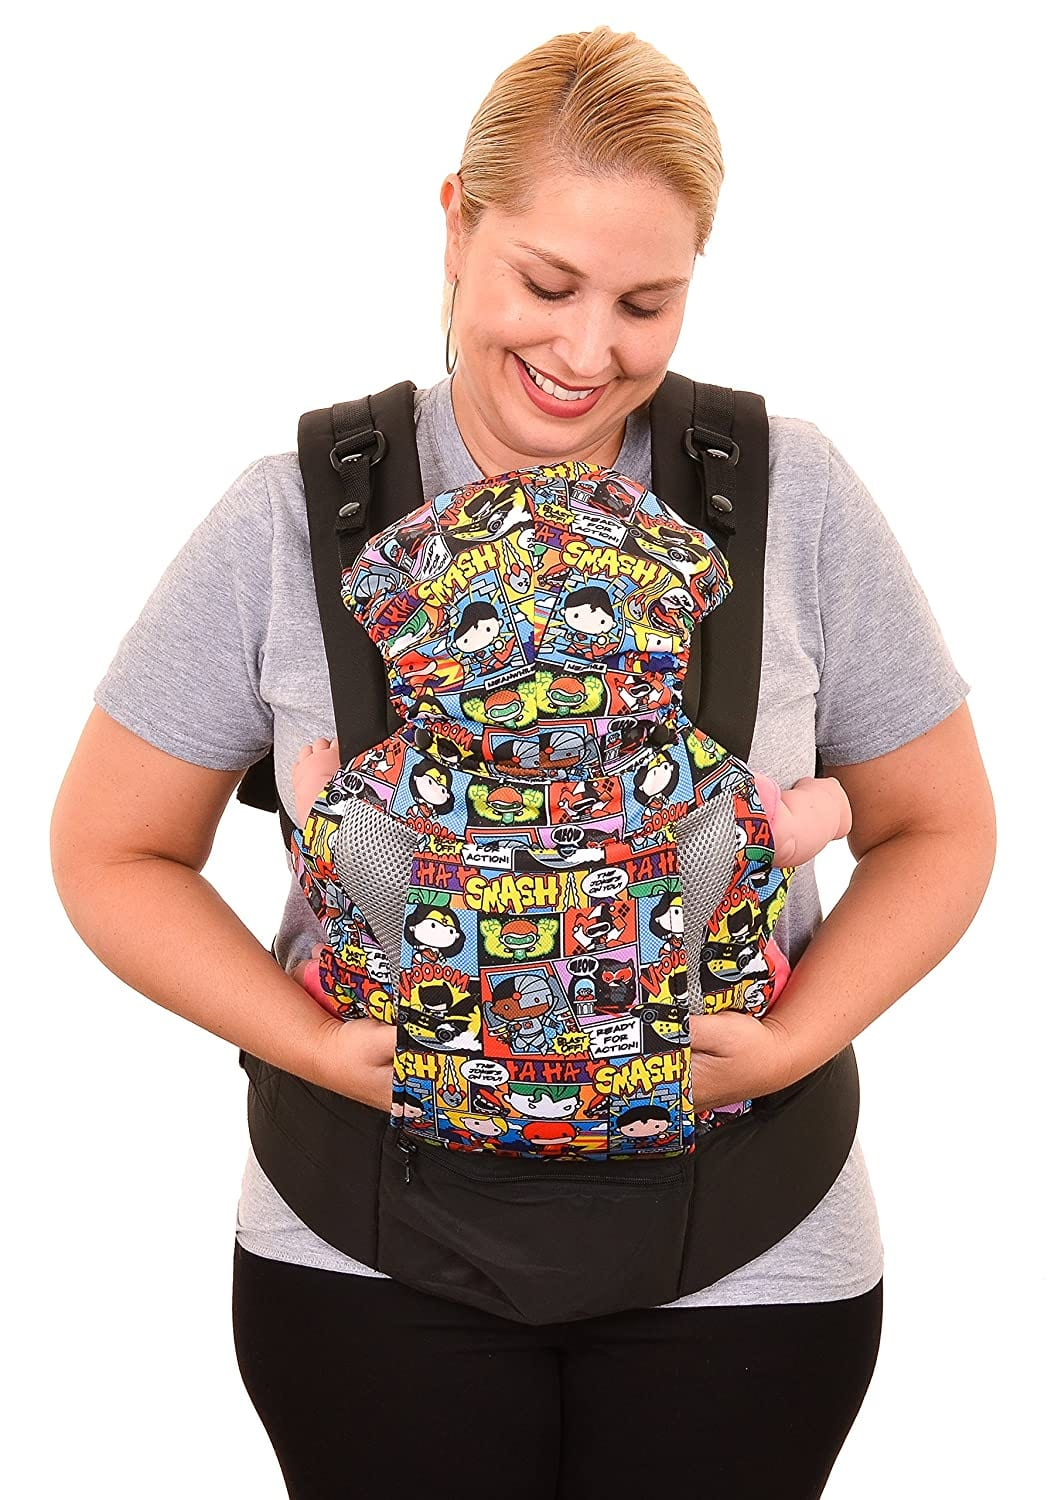 KidsEmbrace Justice League Baby Carrier w/ Hood (Chibi) $19.80  + Free Shipping w/ Prime or on $25+